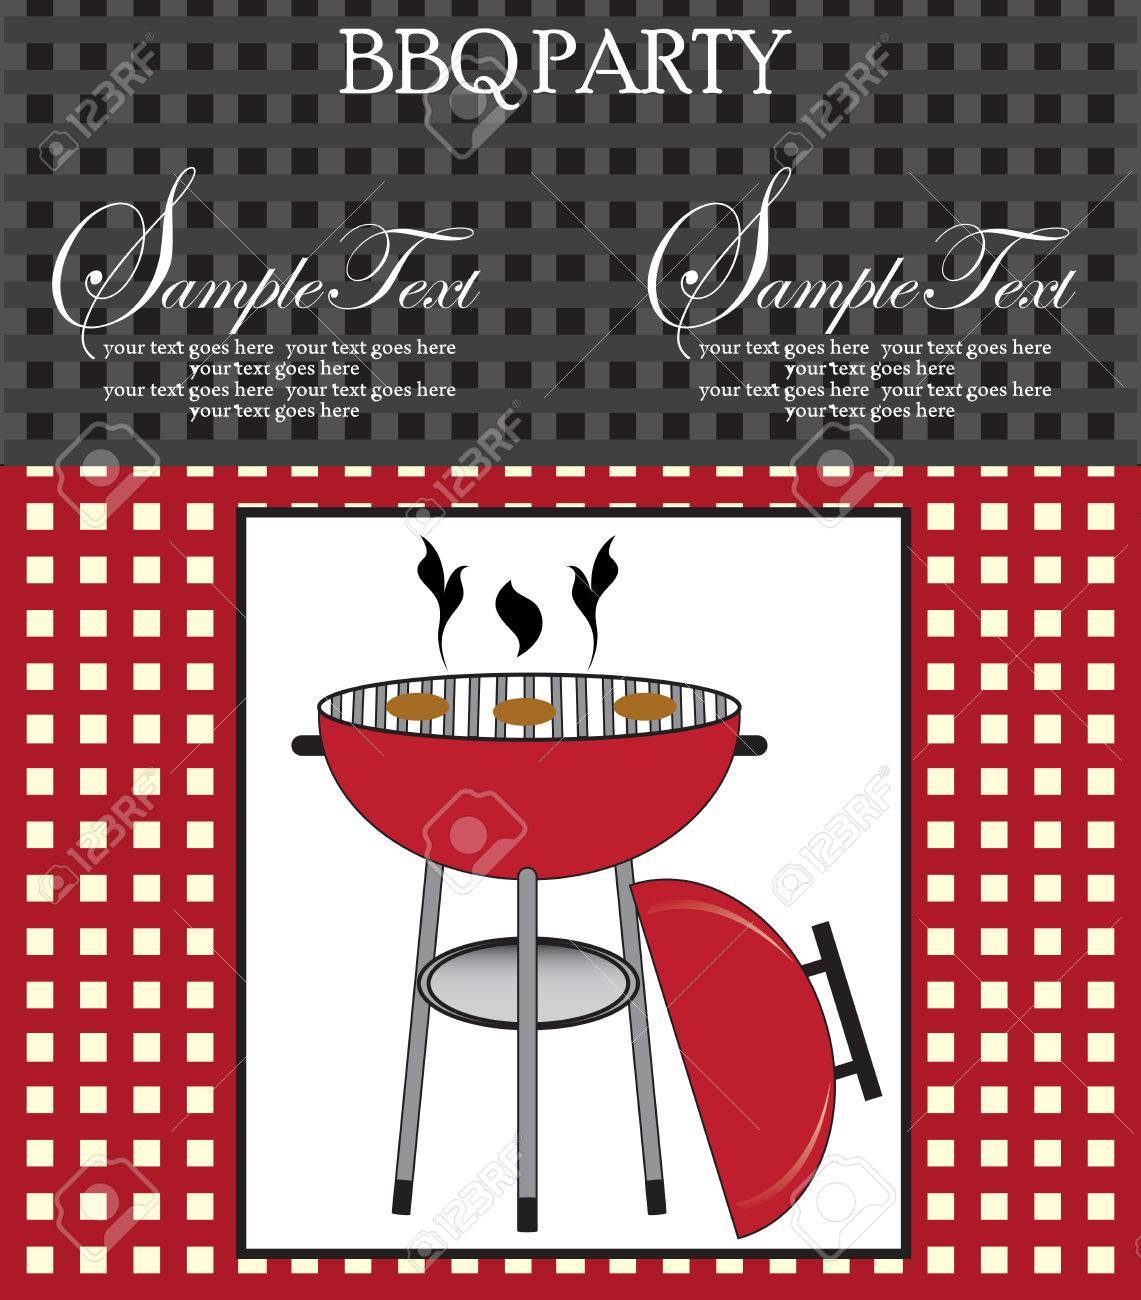 Vintage Barbecue Party Invitation Card With Abstract Weave Design ...